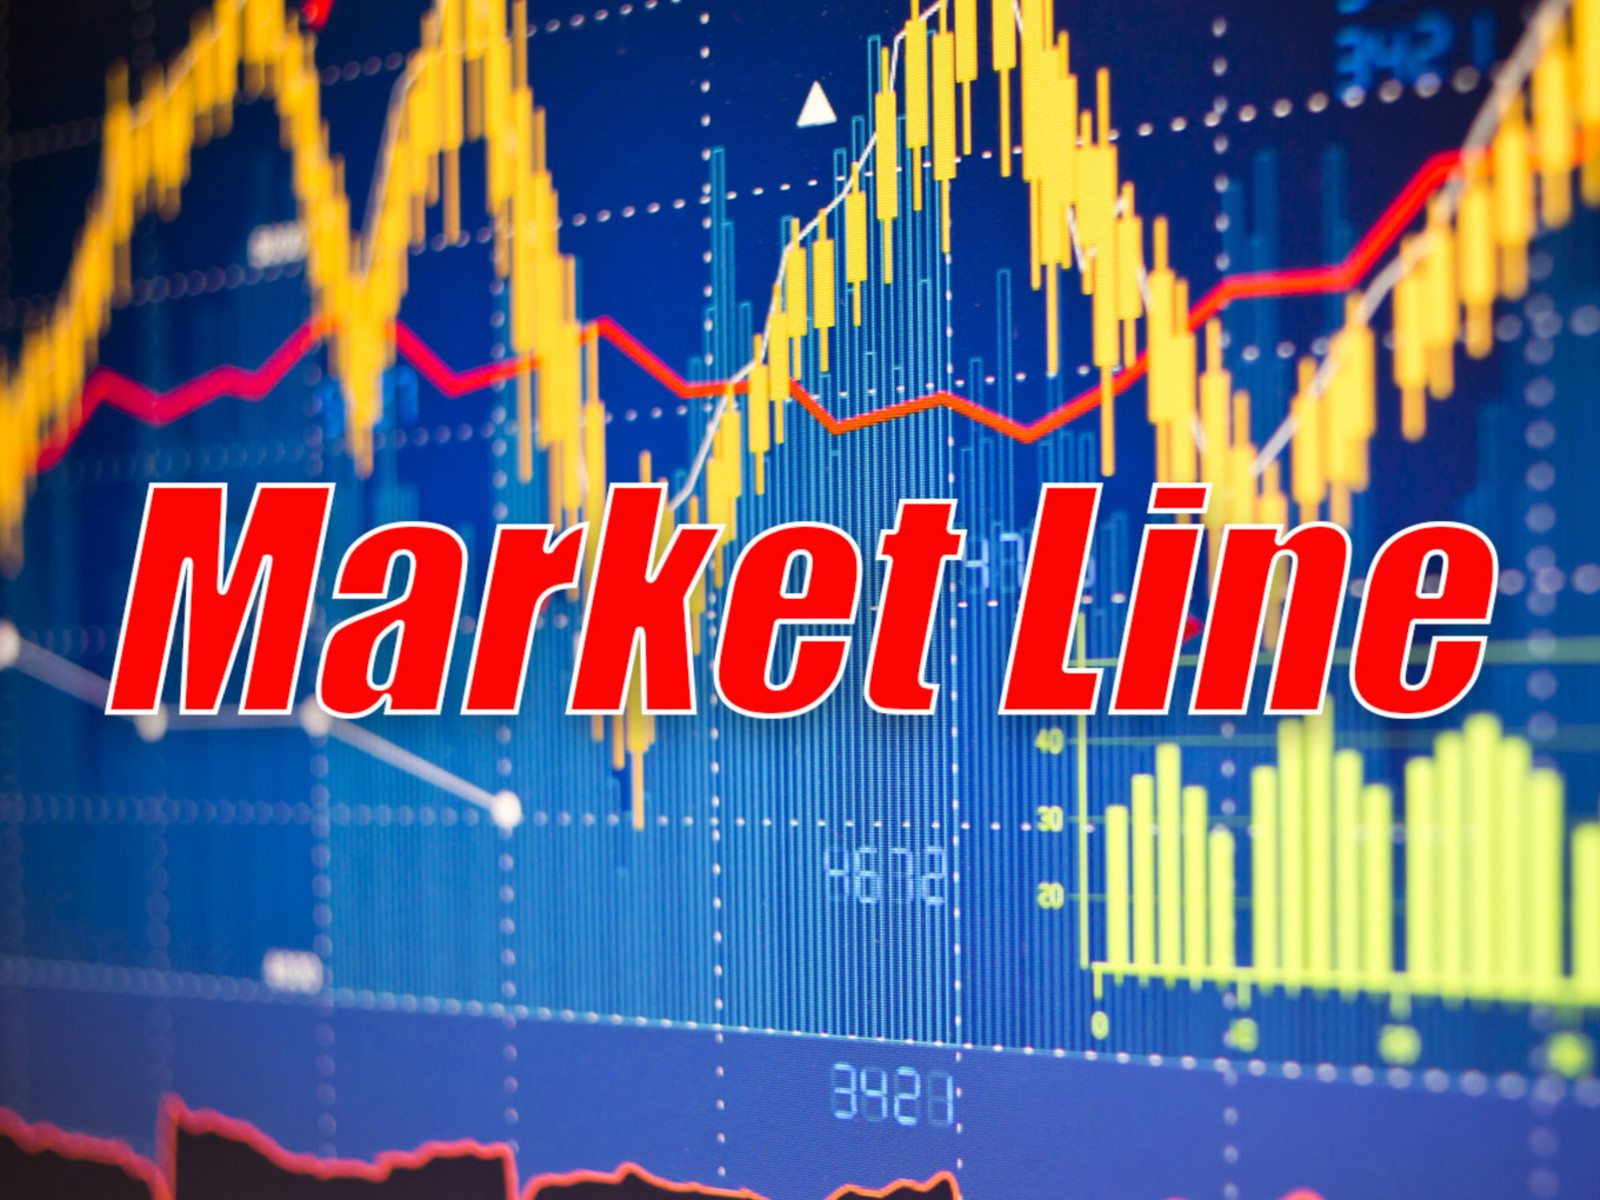 Marketline Report for Friday, October 11th